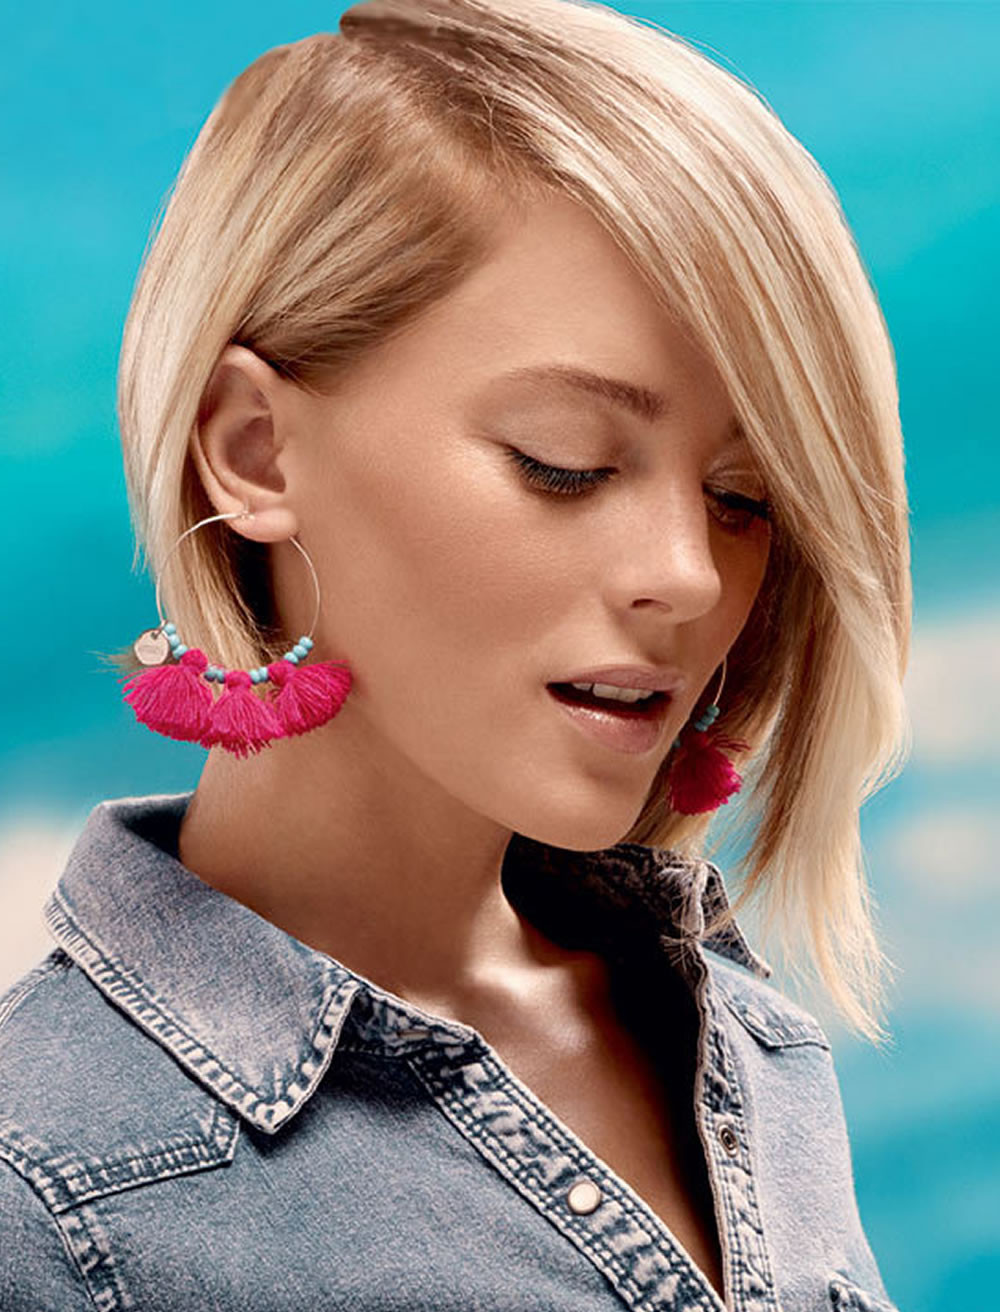 Best ideas about Hairstyle 2019 Female . Save or Pin The Best 30 Short Bob Haircuts – 2018 Short Hairstyles for Now.